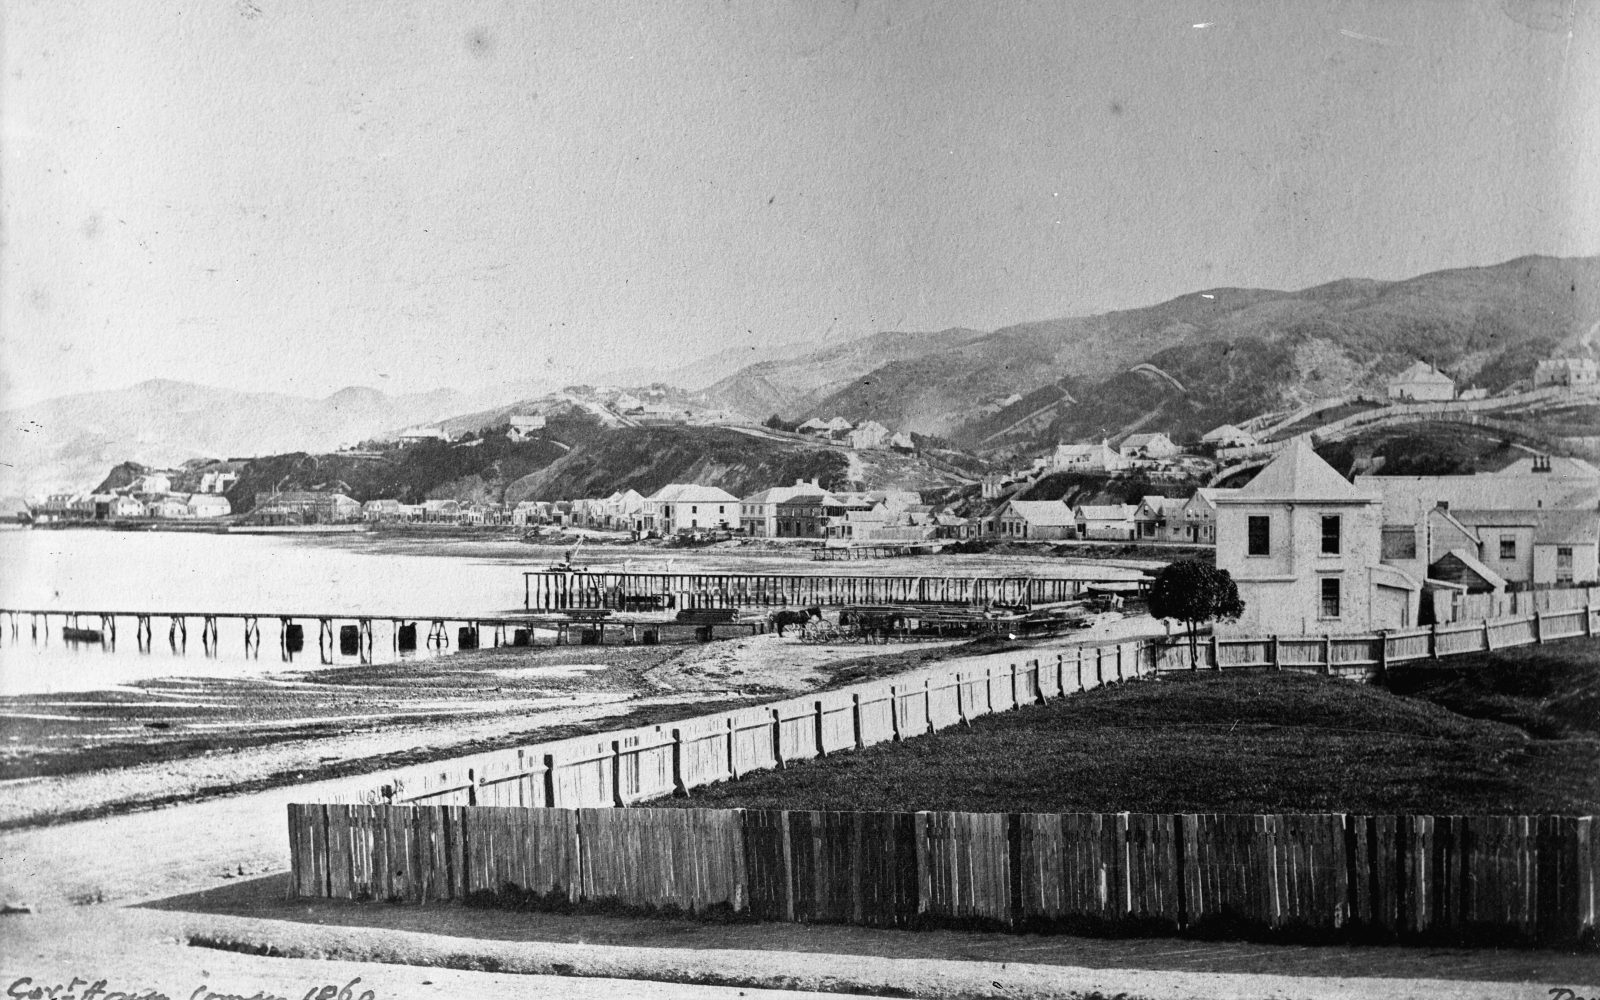 In Wellington Harbour, the 1855 earthquake raised the seabed by about a metre-and-a-half, making existing jetties useless. By 1860 when this photograph looking south along Lambton Quay was taken, the damage to buildings caused by the earthquake had long since been repaired, but the jetties seem to have been little modified.